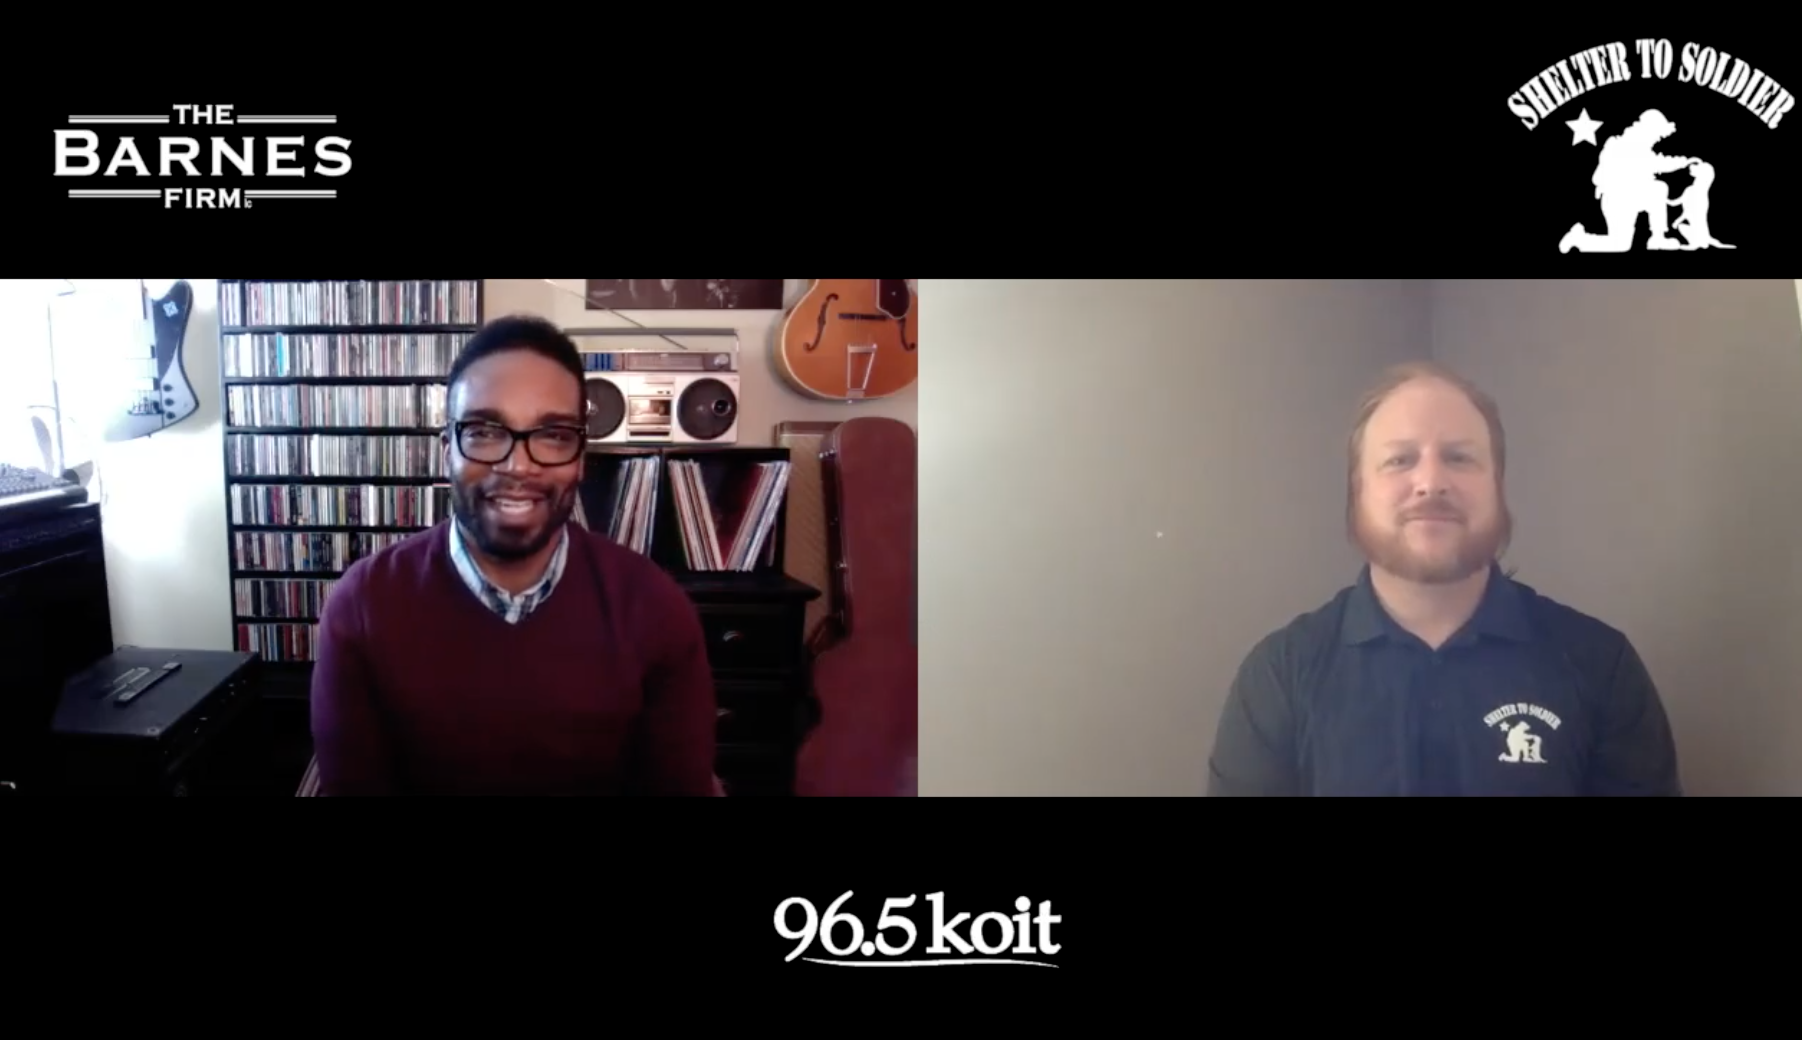 96.5 KOIT San Francisco - Shelter to Soldier Interview